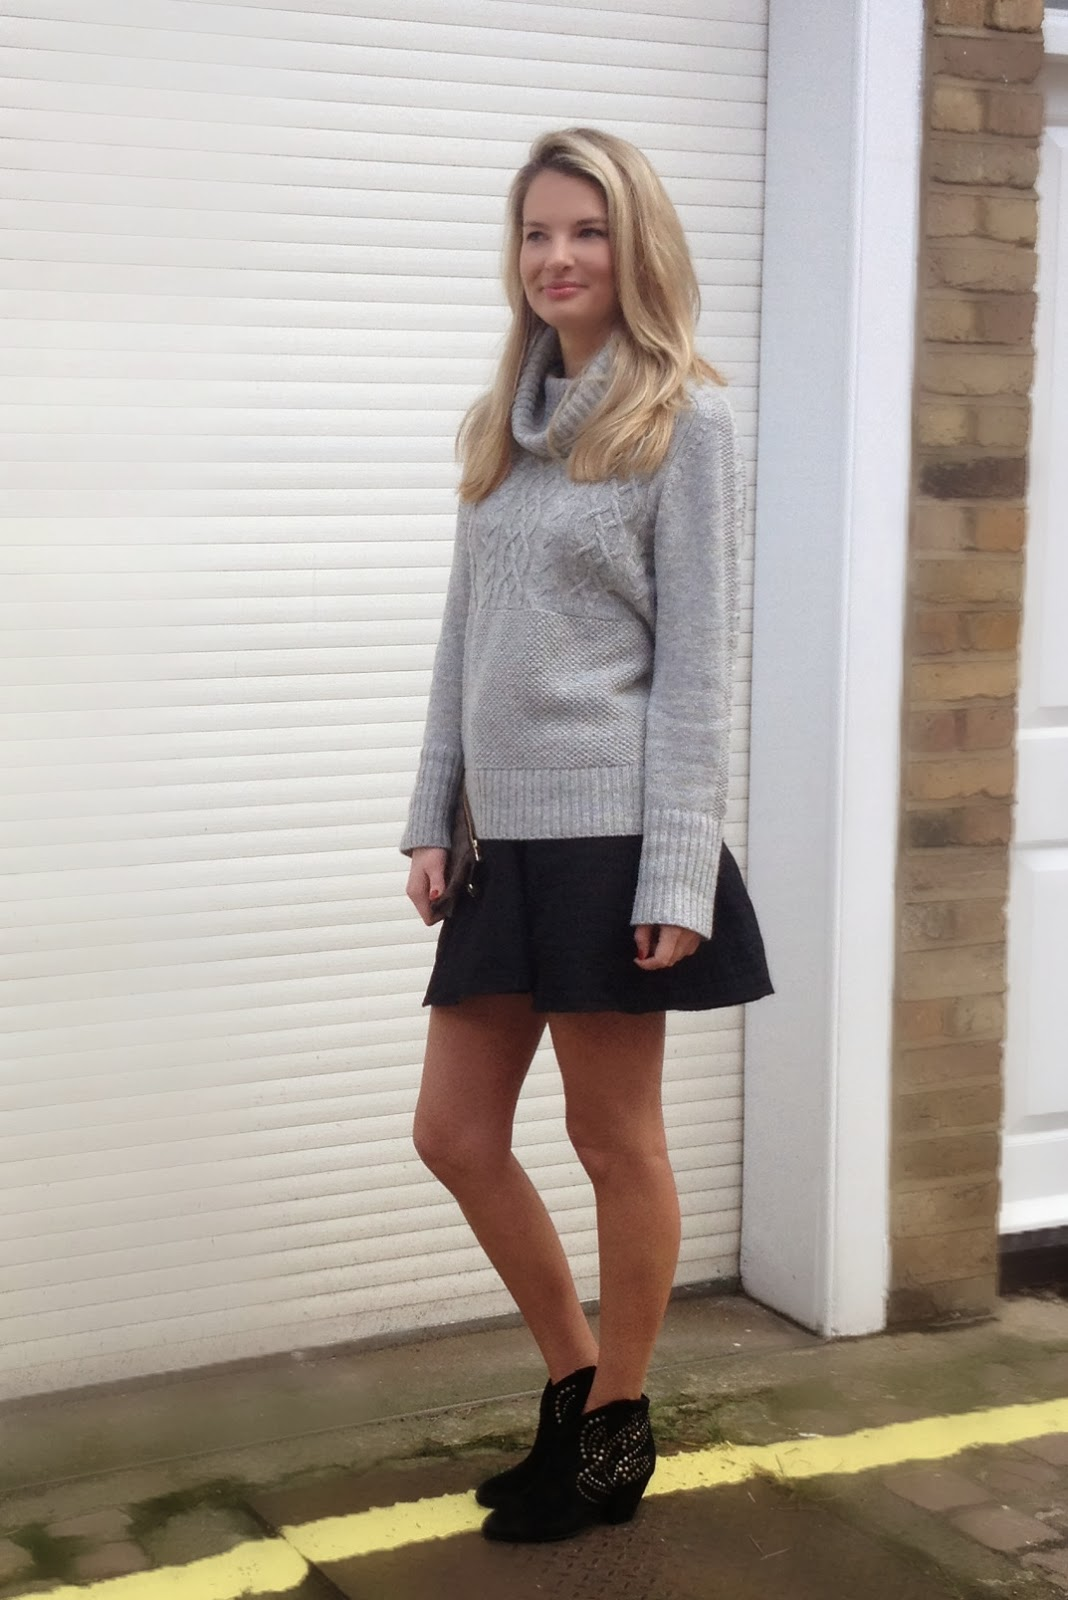 ASOS skater skirt, skater skirt, volume skater skirt, knitted jumper, grey jumper, jumper and skirt, london blogger, german blogger, ash footwear boots, ash boots, structured skirt, asos structured skirt, boots, studded boots